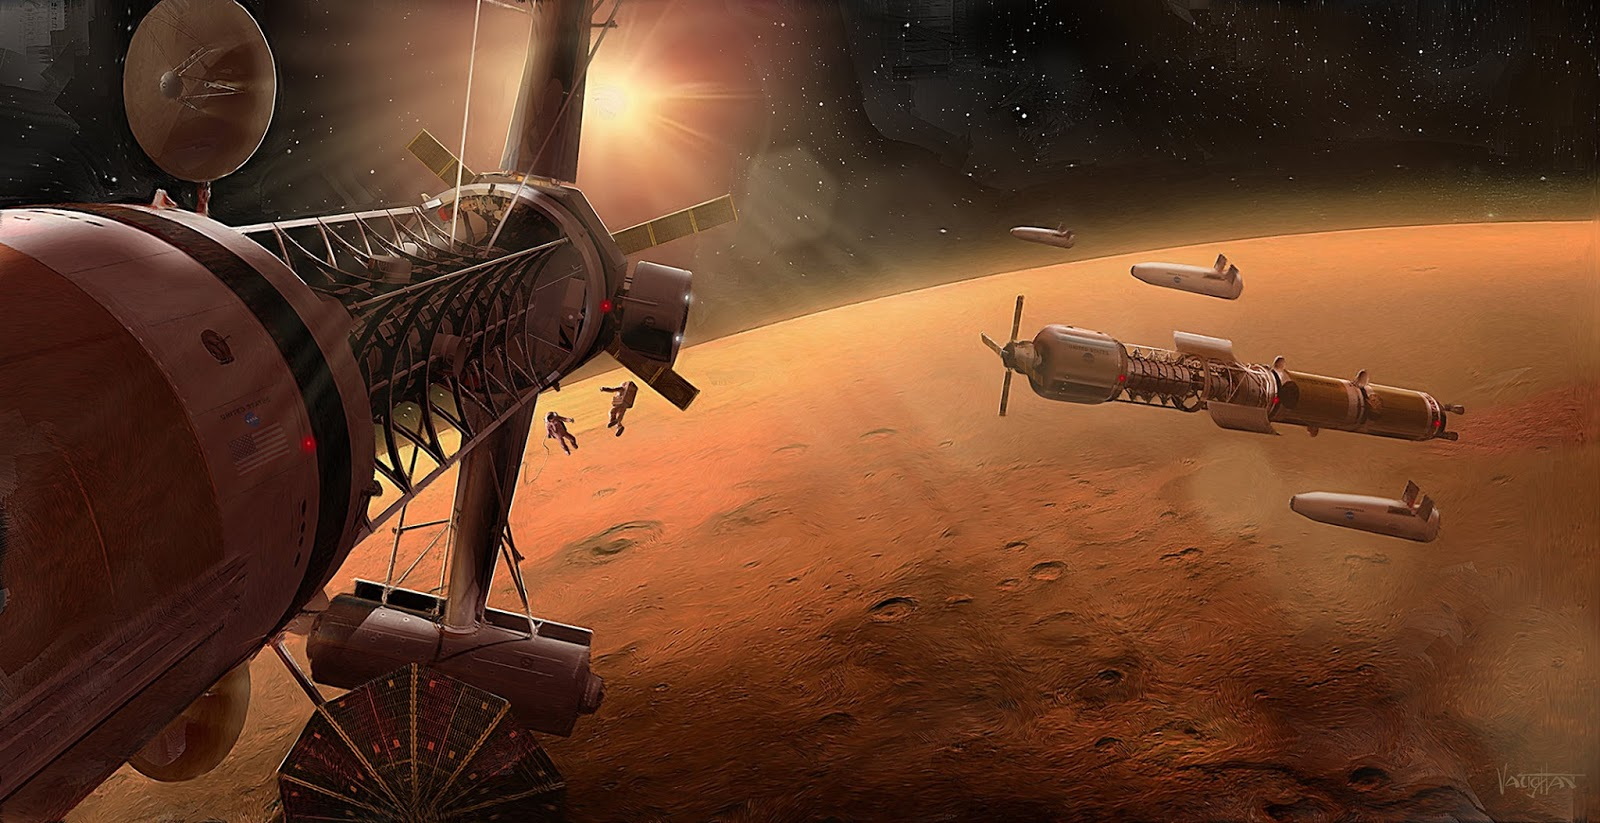 Spaceships in Mars orbit by James Vaughan